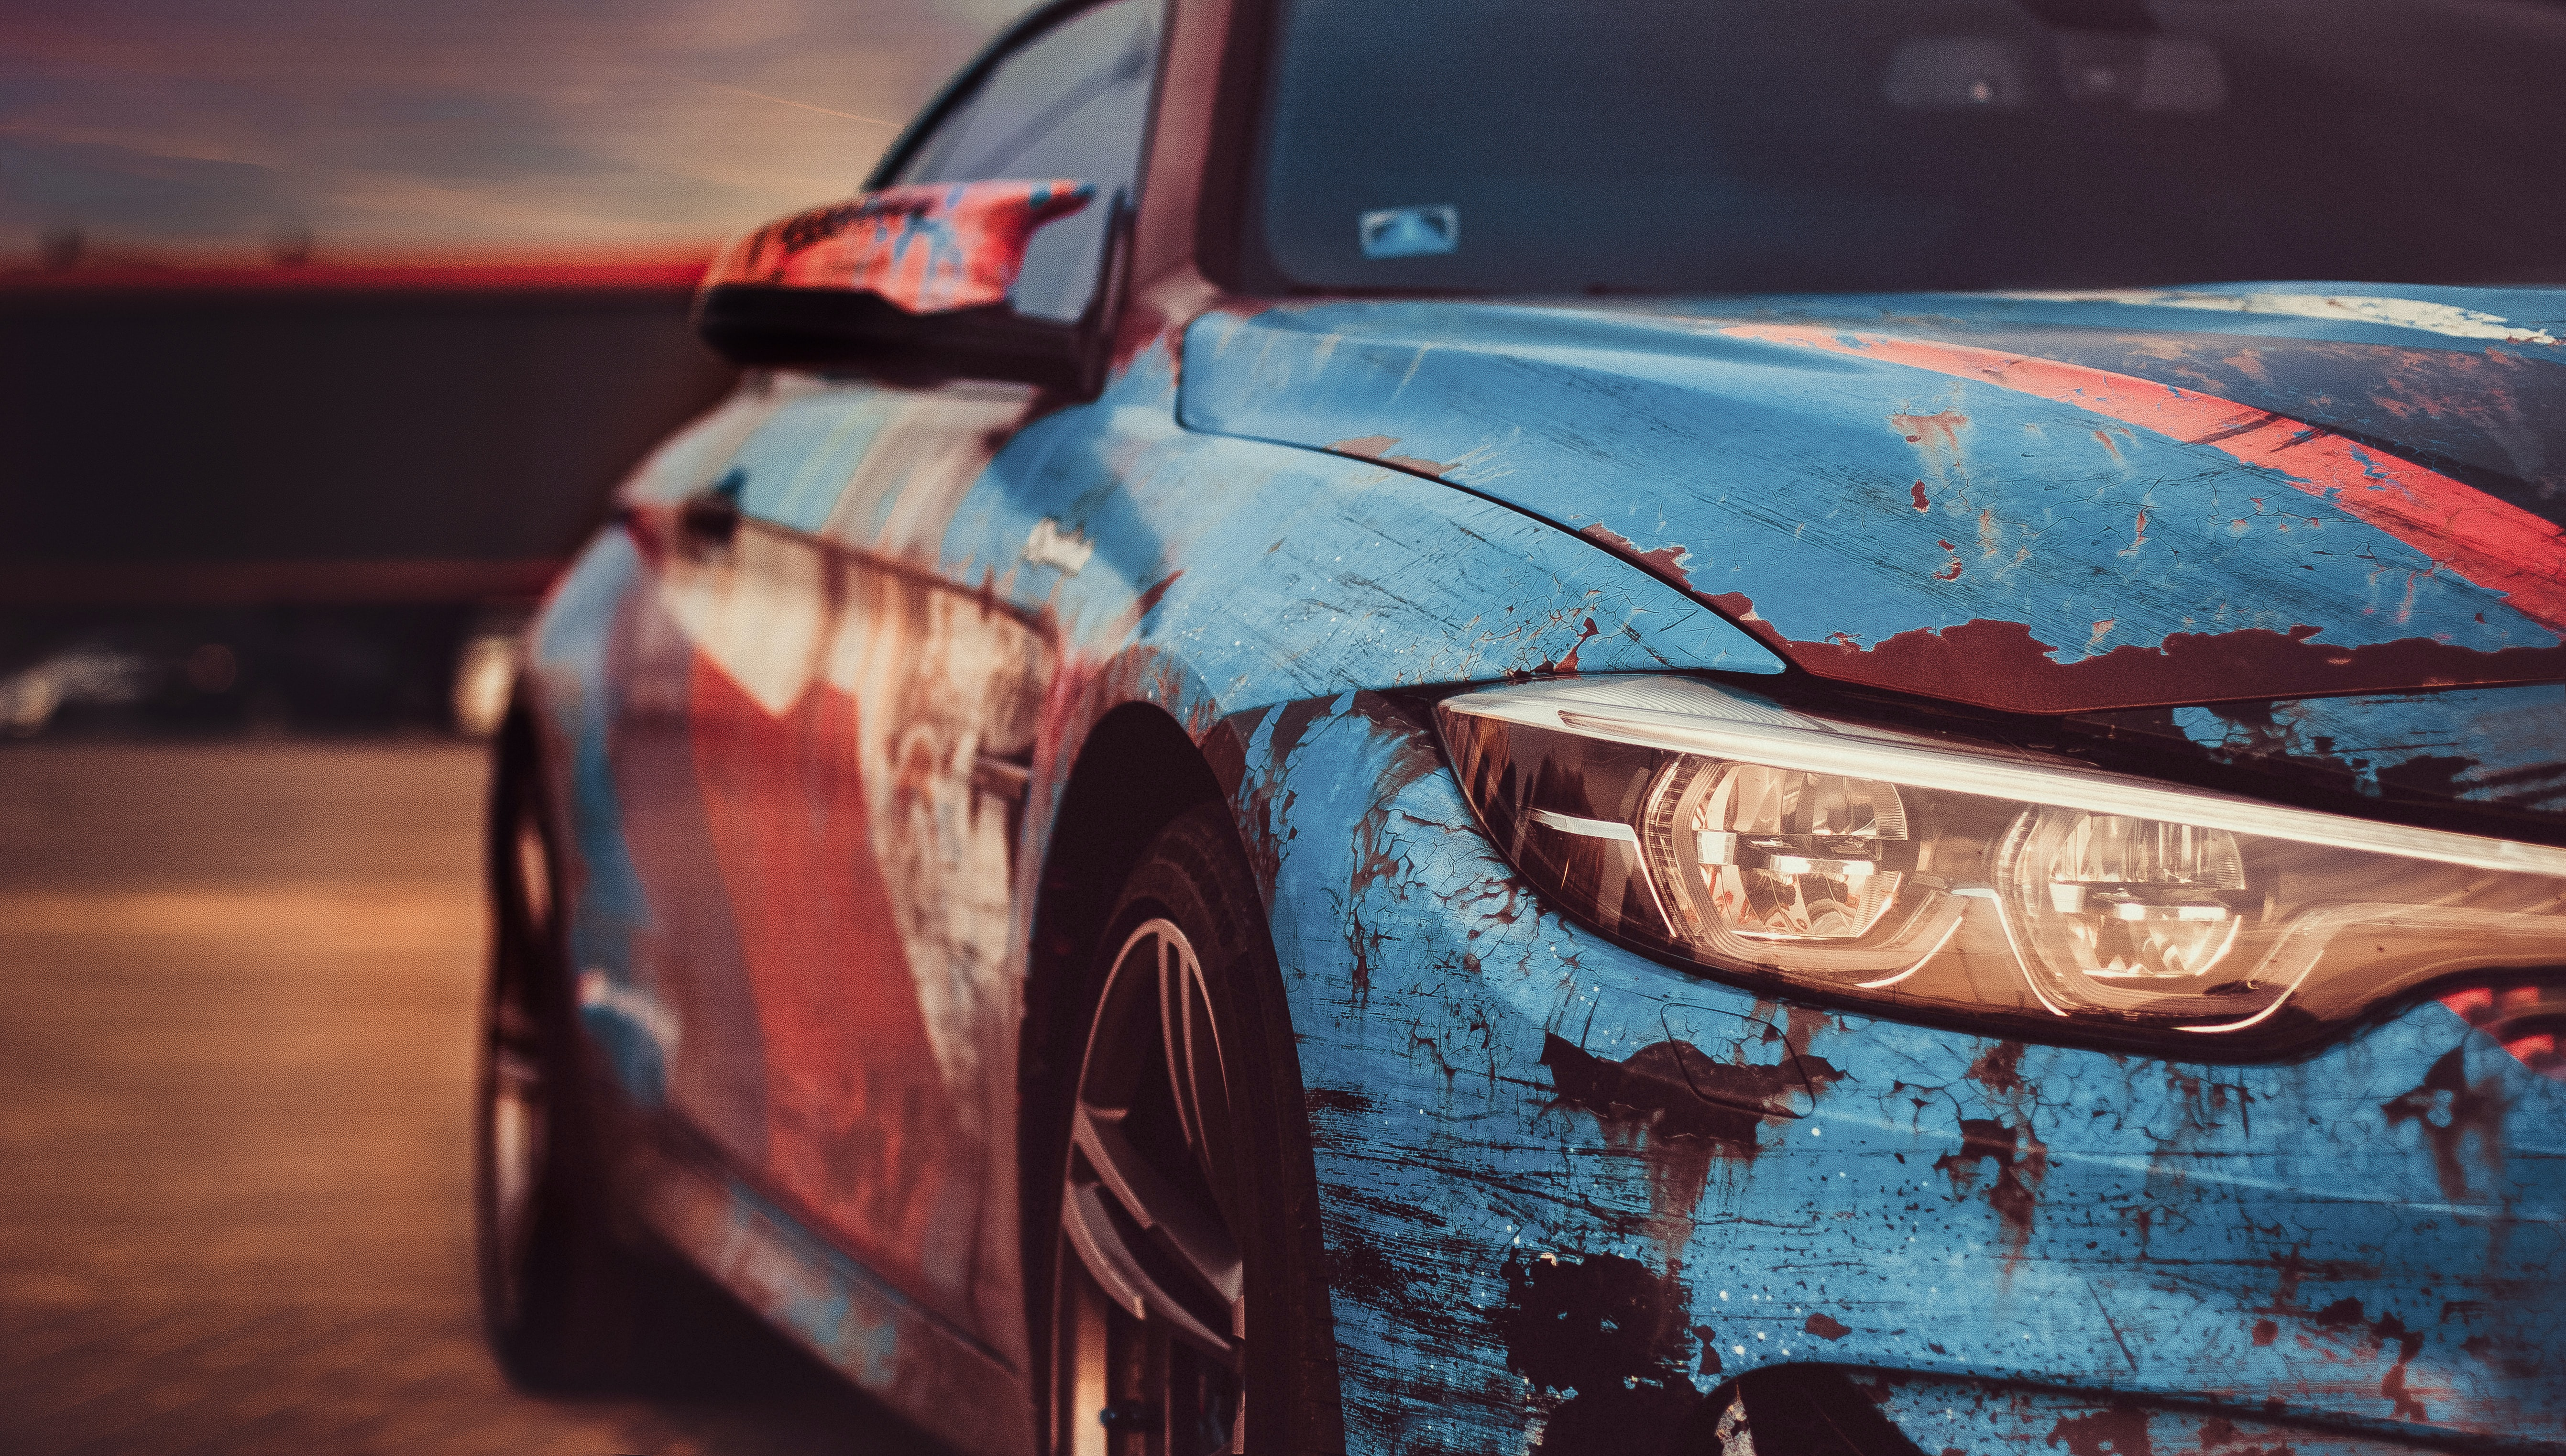 selective focus photography of BMW S Series car